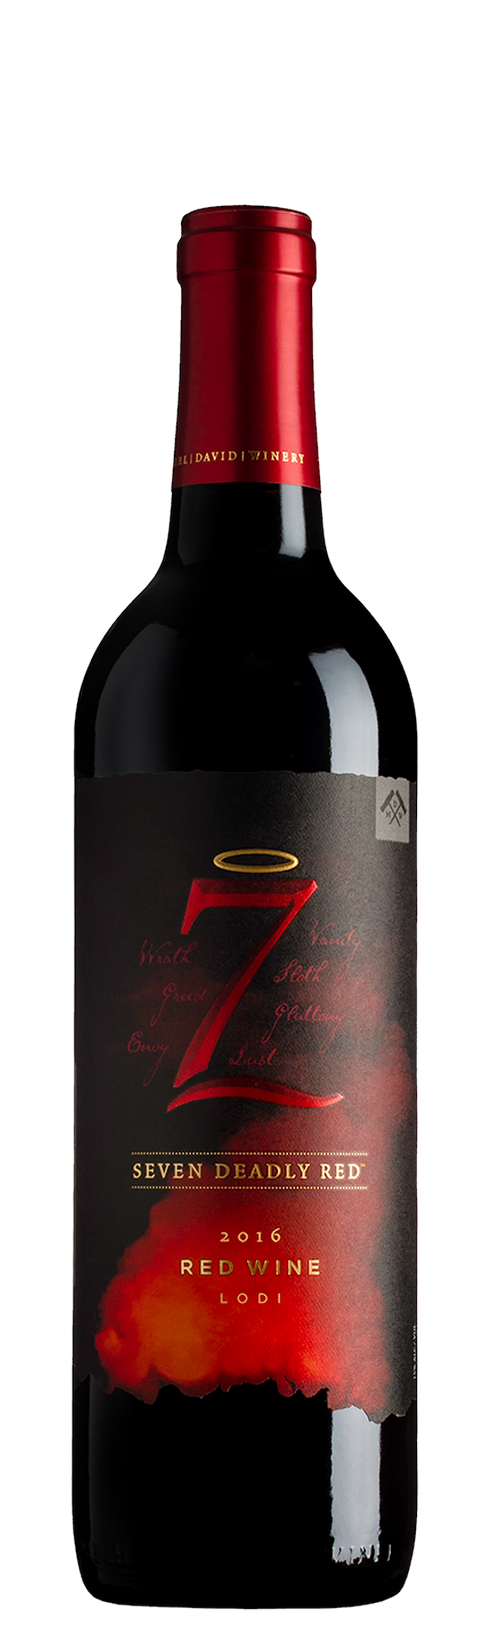 2016 7 Deadly Red Wine